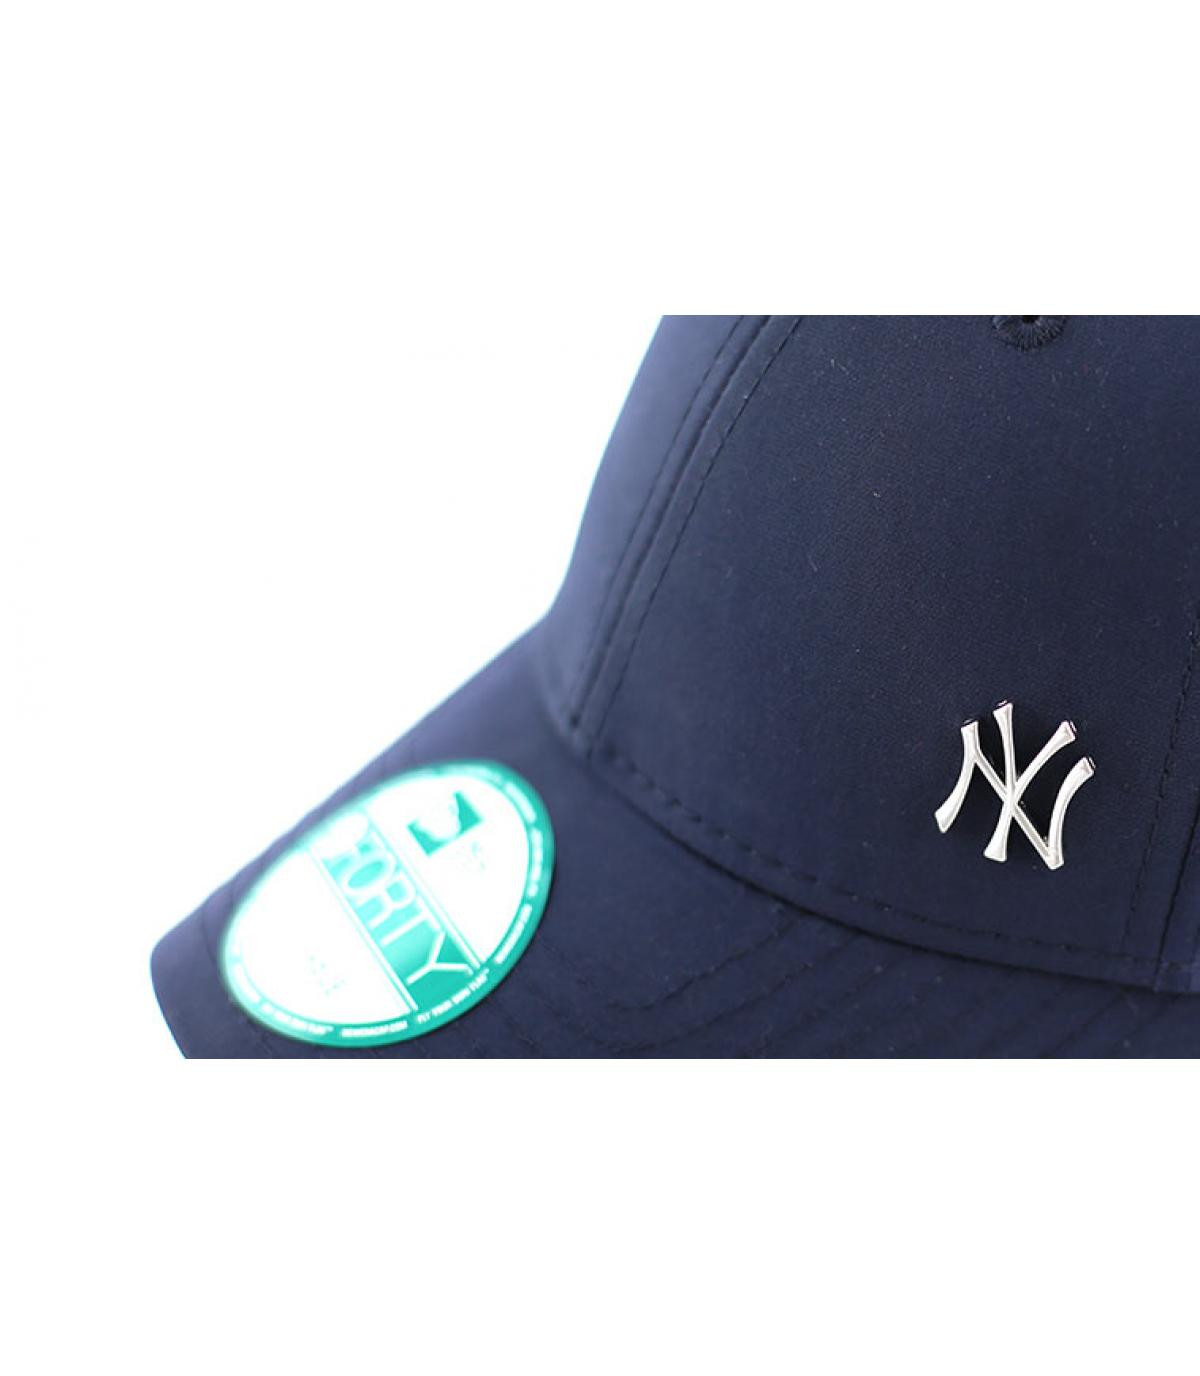 Détails Casquette NY flawless navy - image 3